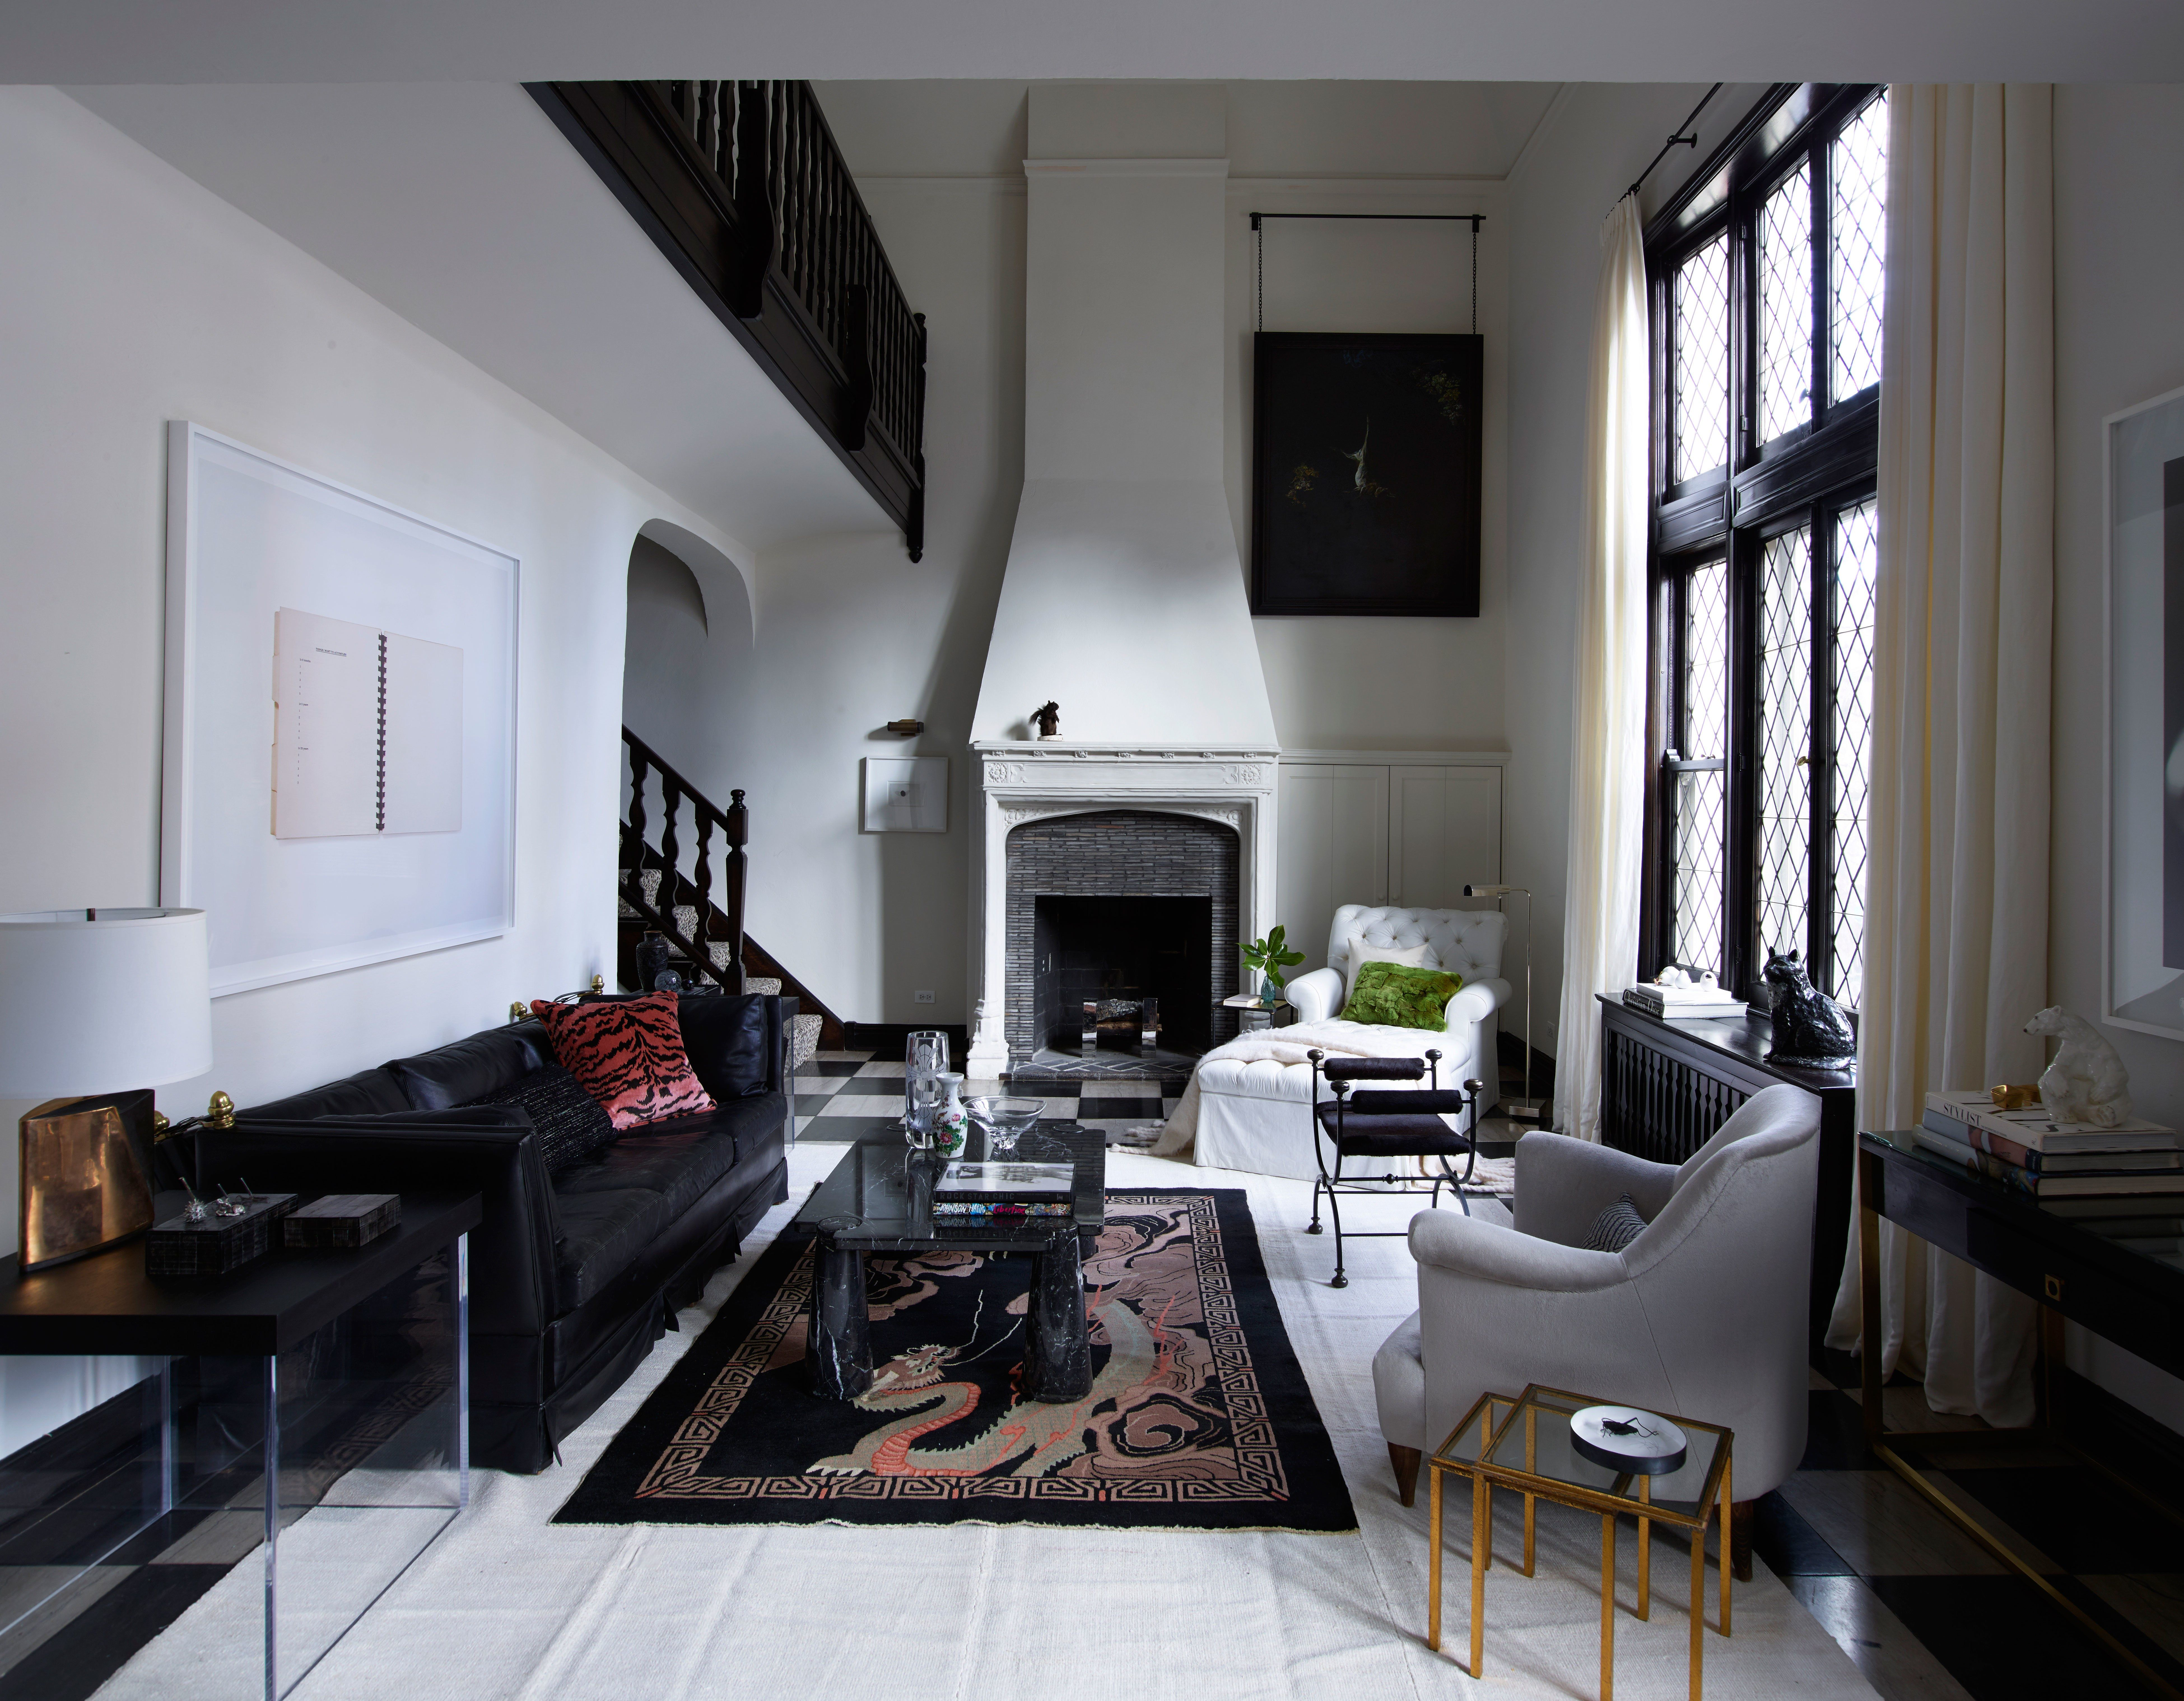 In designer kara manns 1920s gold coast apartment charming architecture and dramatic details exist in harmony